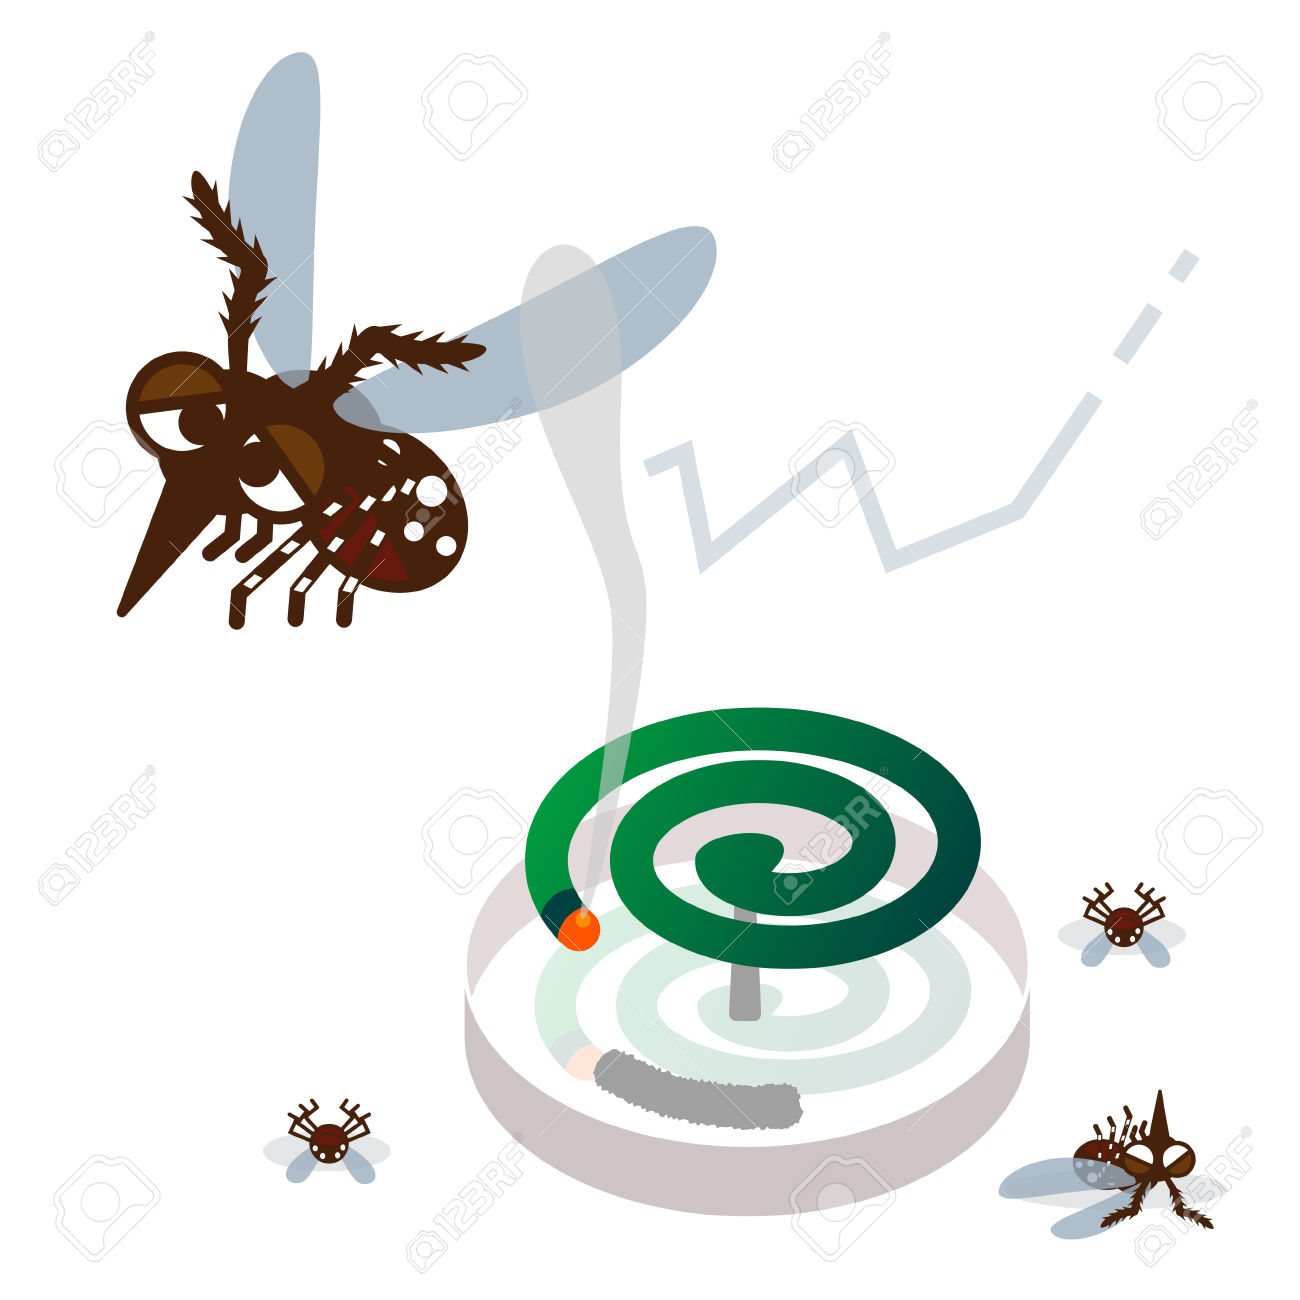 Mosquito Repellent Coil And Mosquito Royalty Free Cliparts.